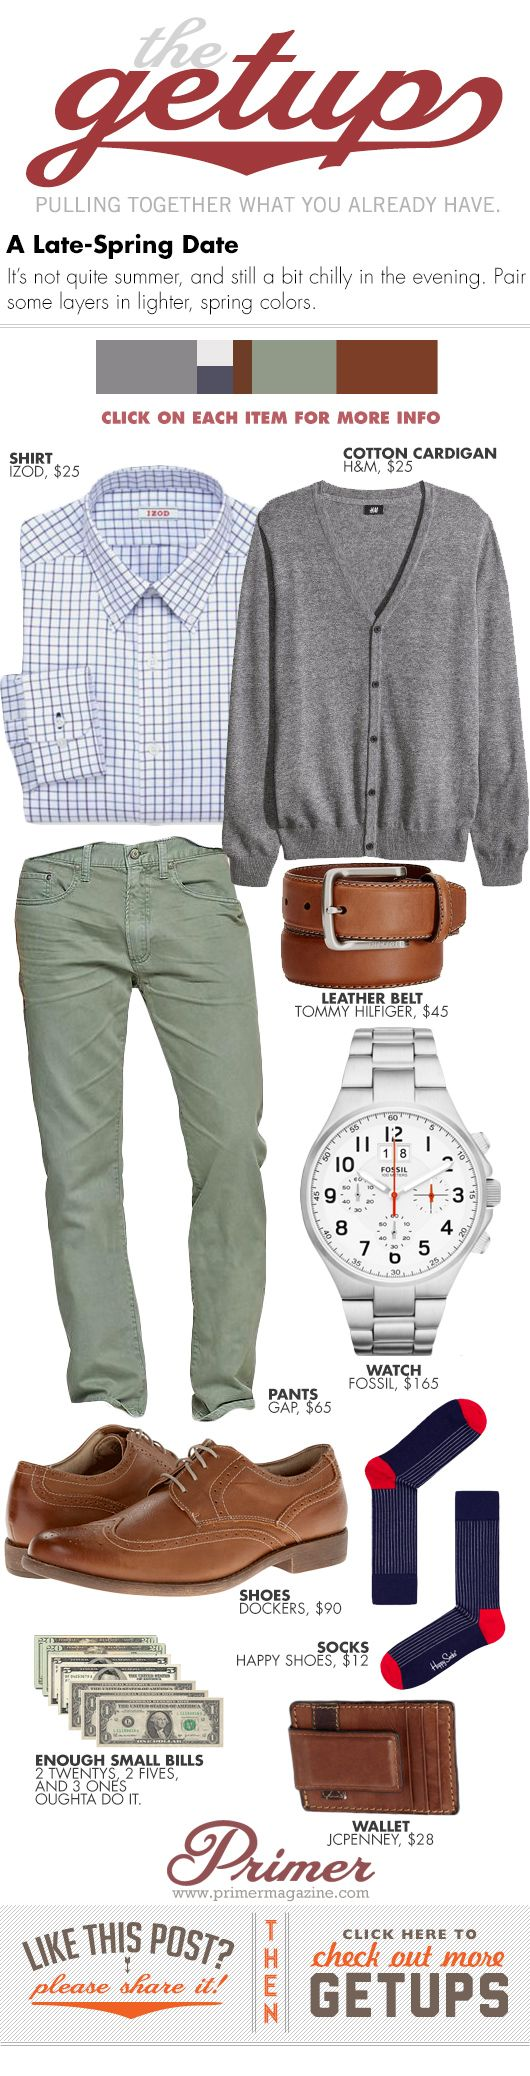 The Getup: Late-Spring Date - Primer #casual #menstyle #menswear